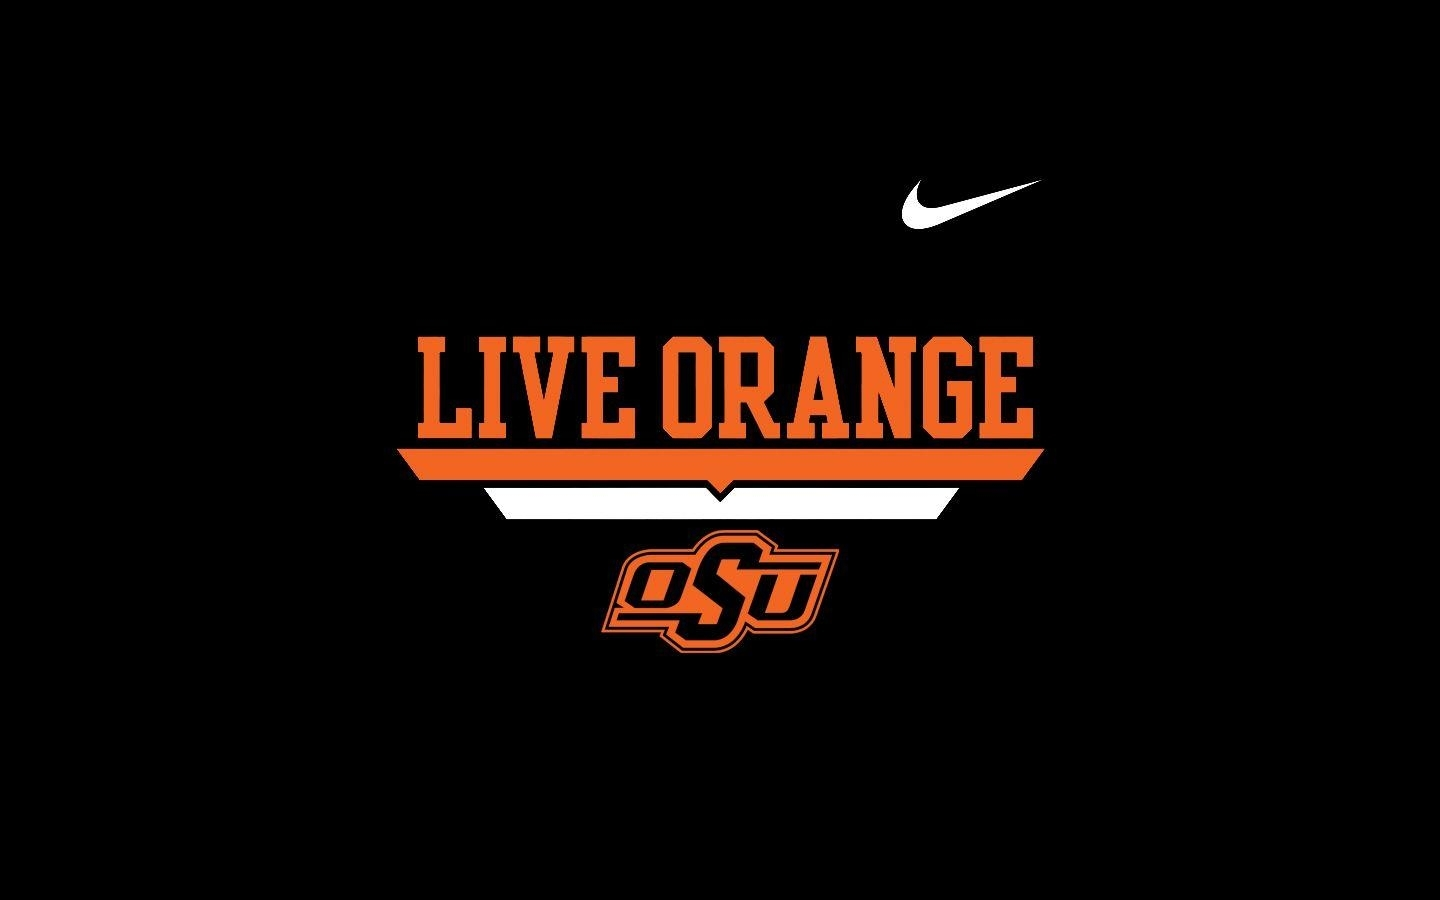 oklahoma state university 2016 football schedule wallpapers